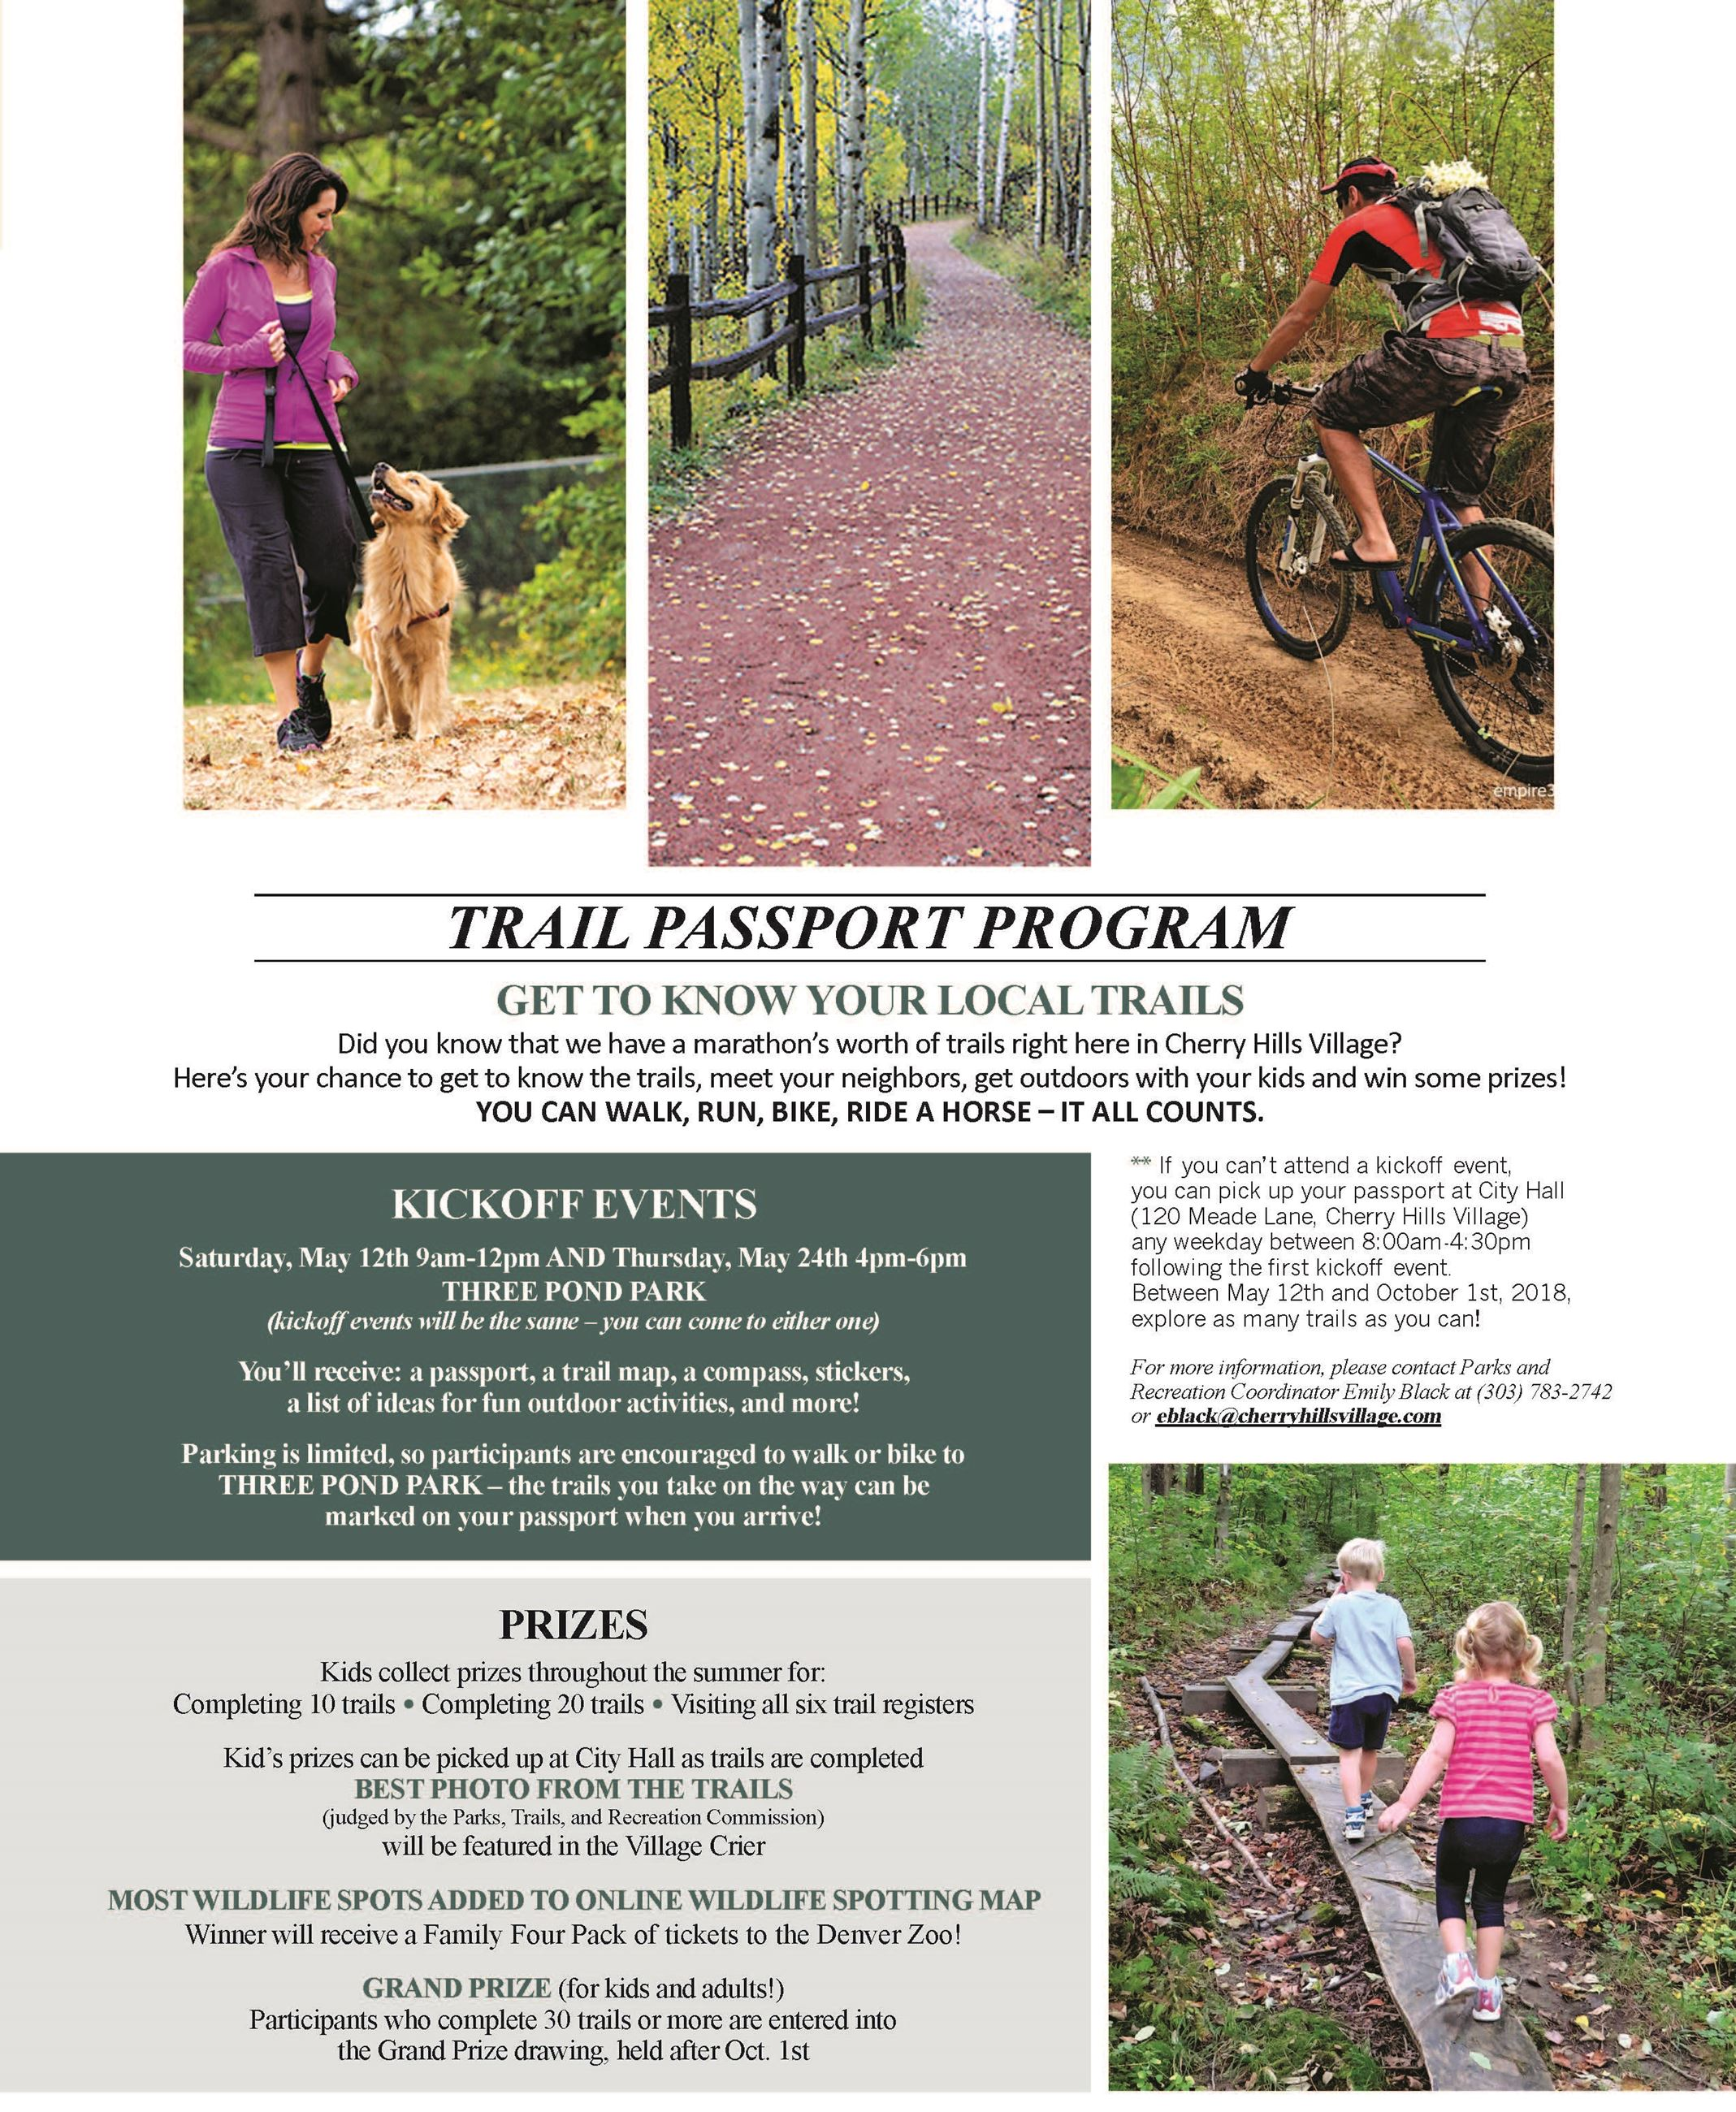 Final Trail Passport Program flyer